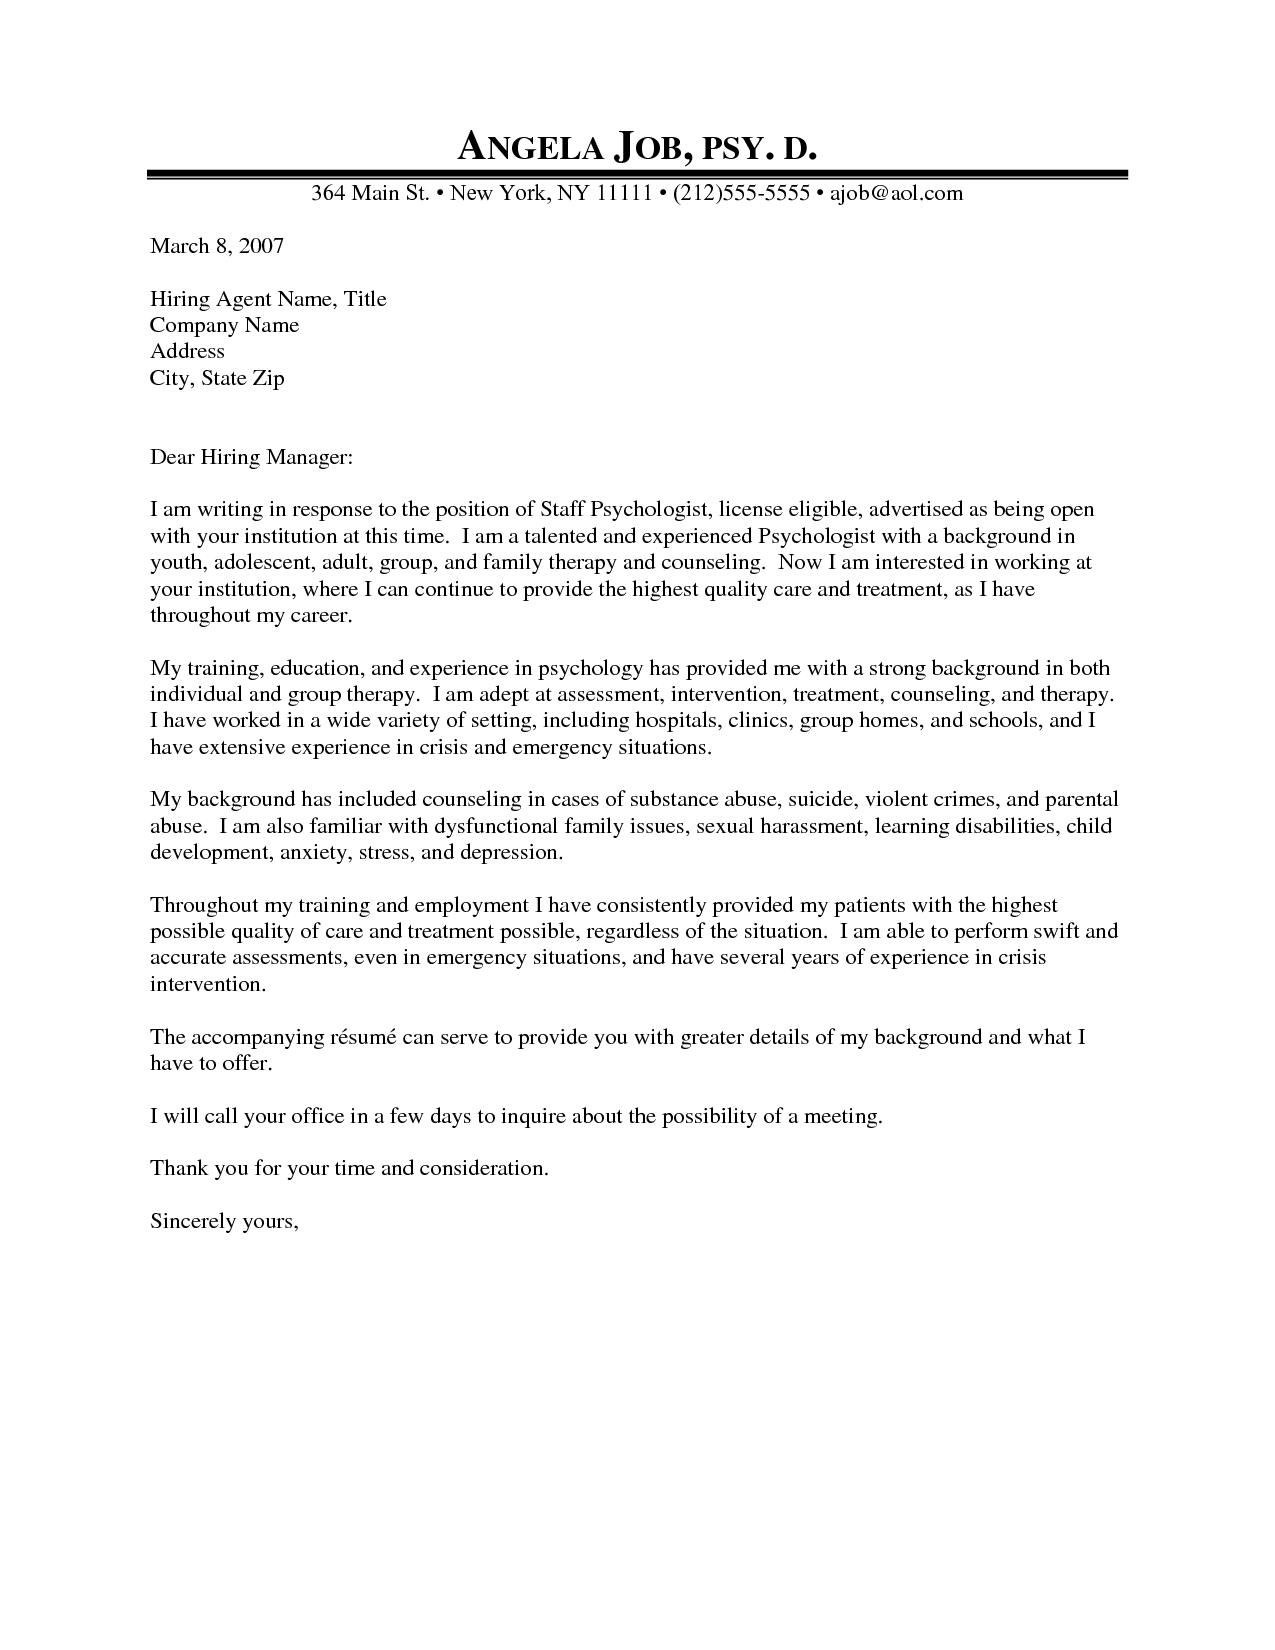 Professional Counseling Cover Letter | Psychologist Cover ...